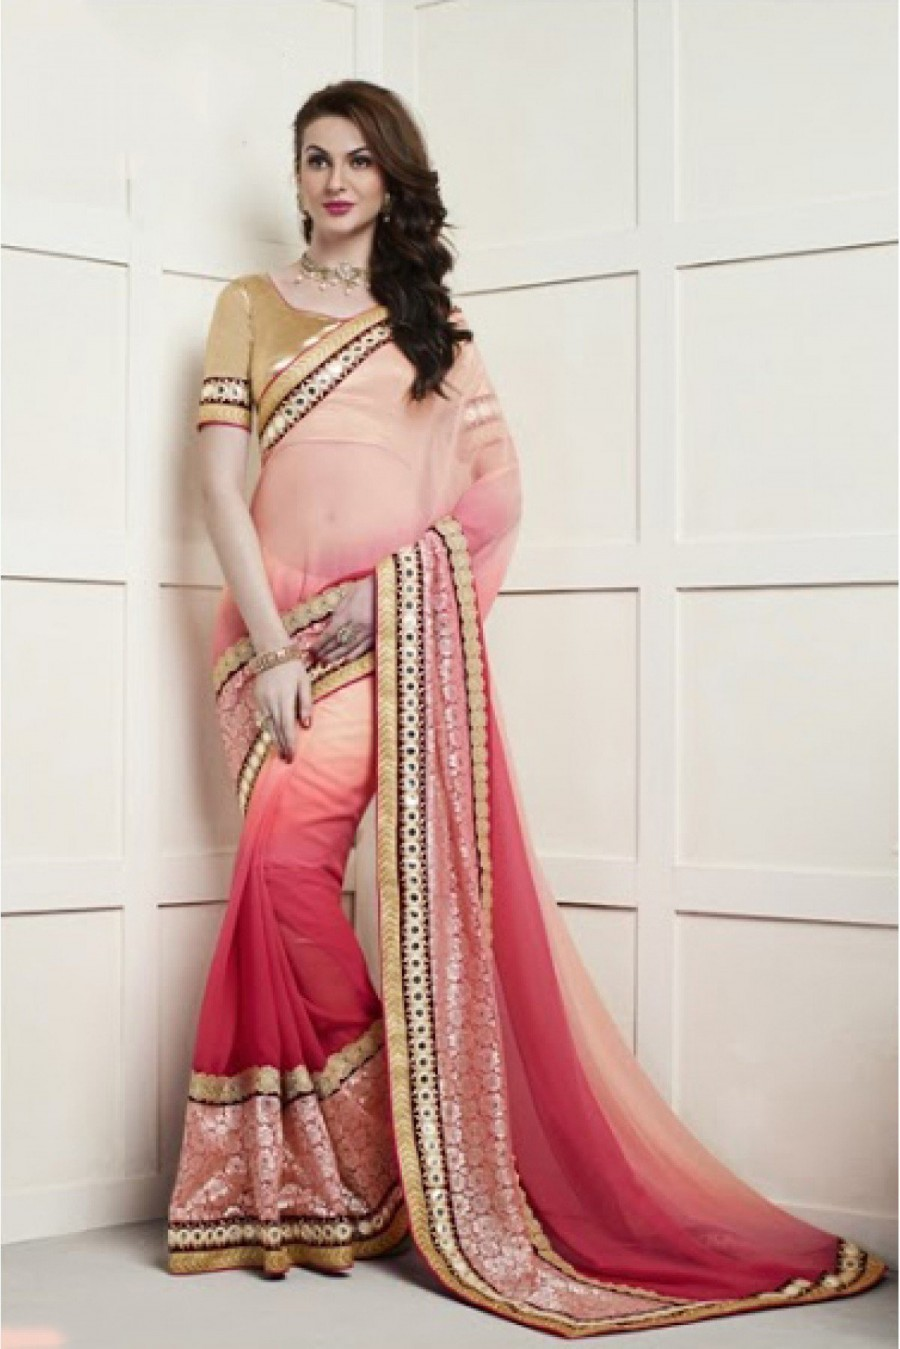 774d5adb63 Buy Viscose Party Wear Designer Saree in Peach and Pink Colour. Online